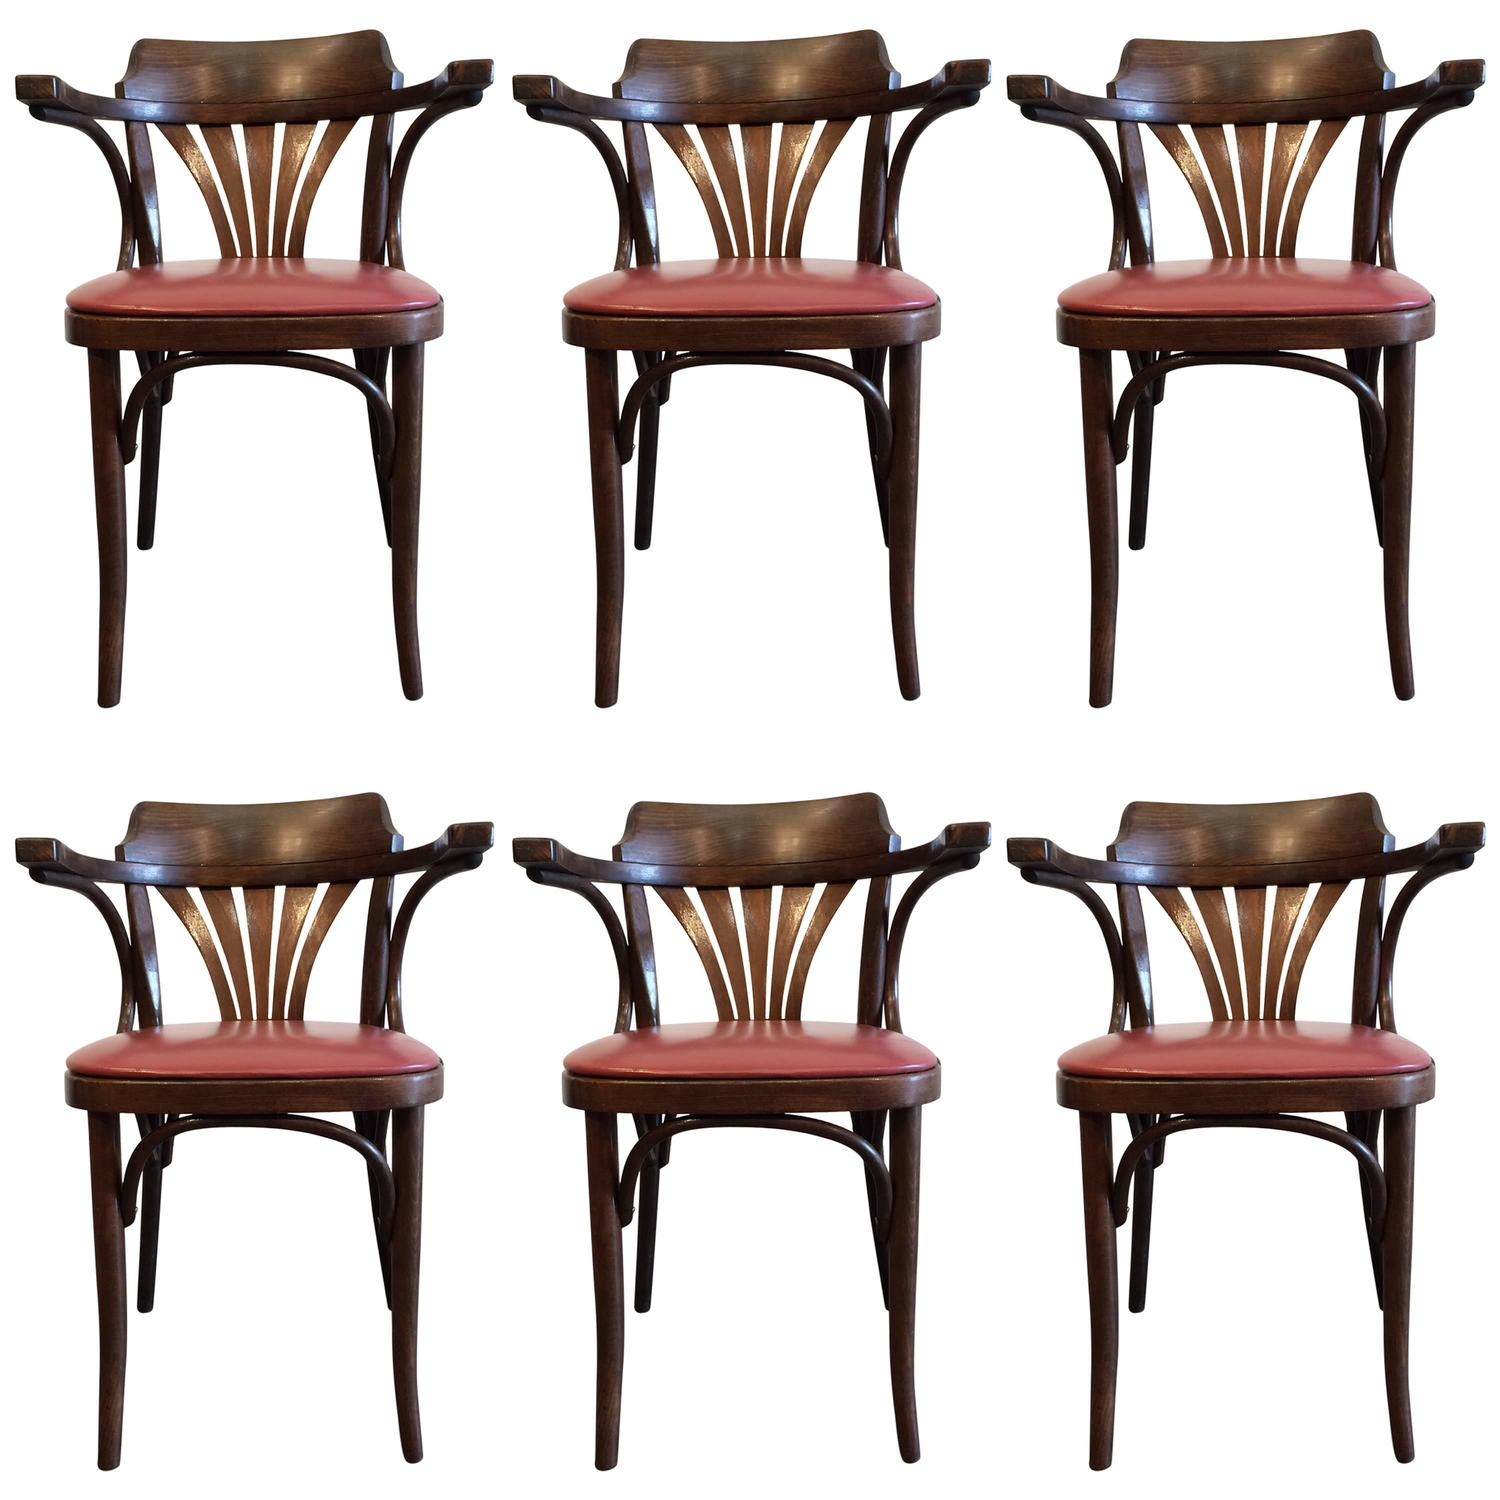 Six Bentwood Chairs by Drevounia Czech Republic 1950s For Sale